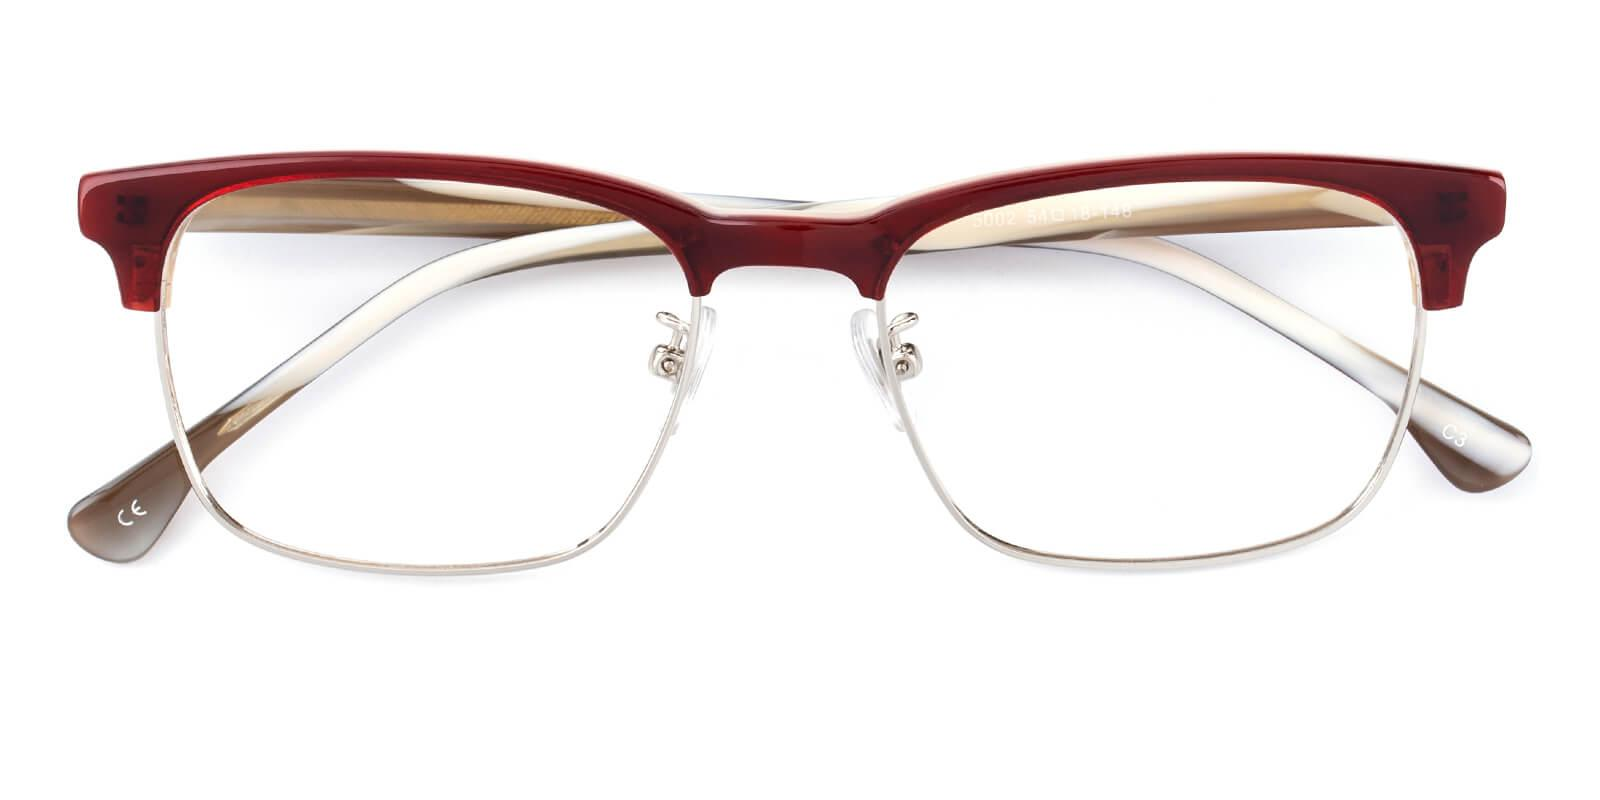 Sublime-Red-Browline-Combination-Eyeglasses-detail